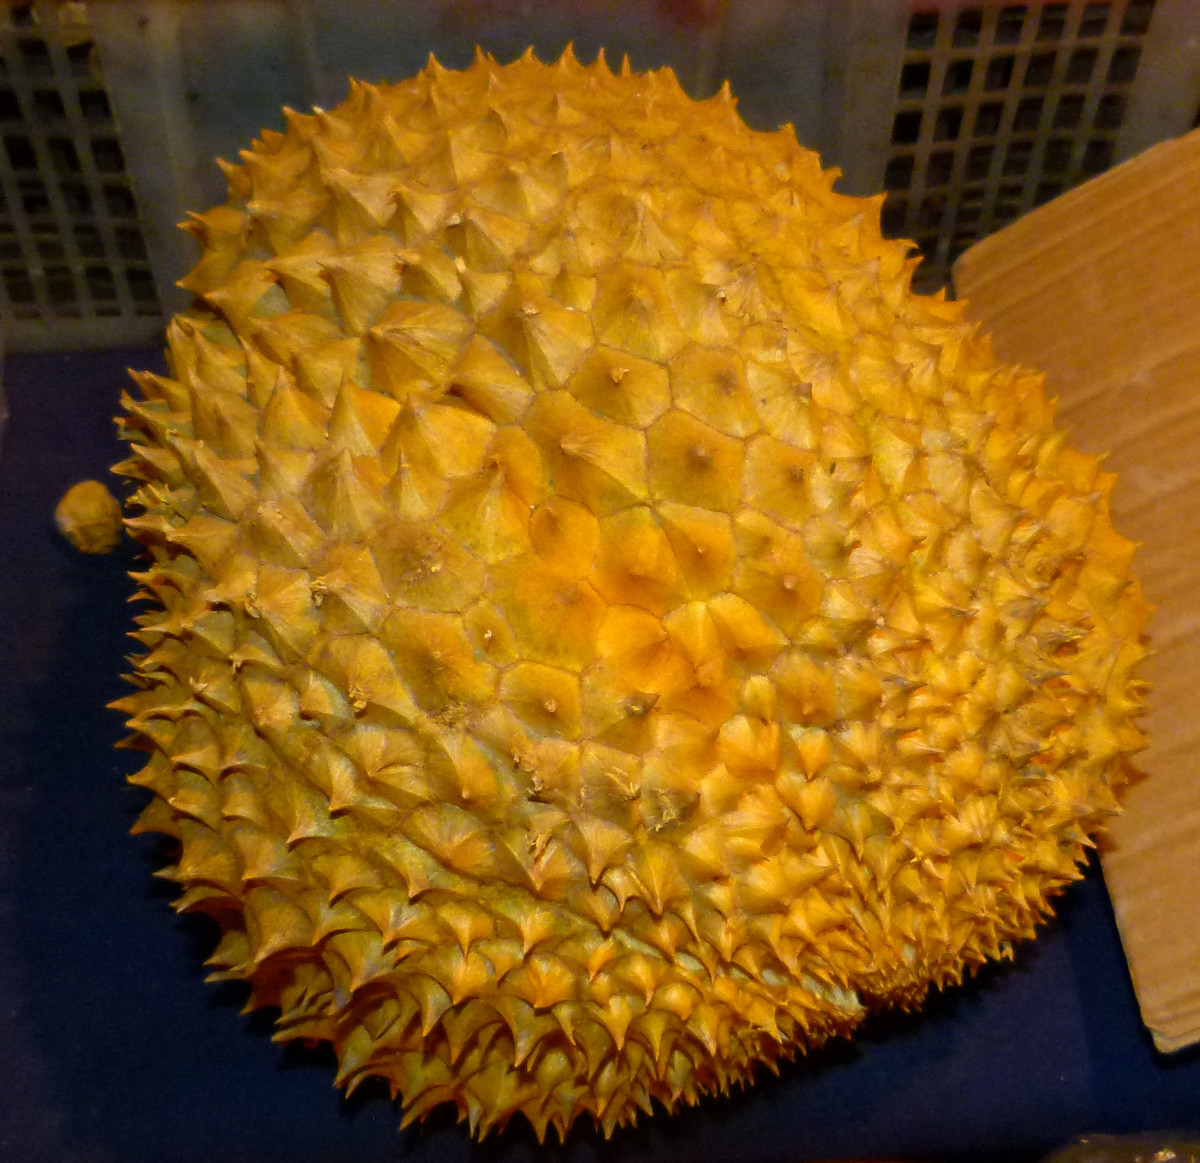 A ripe durian fruit